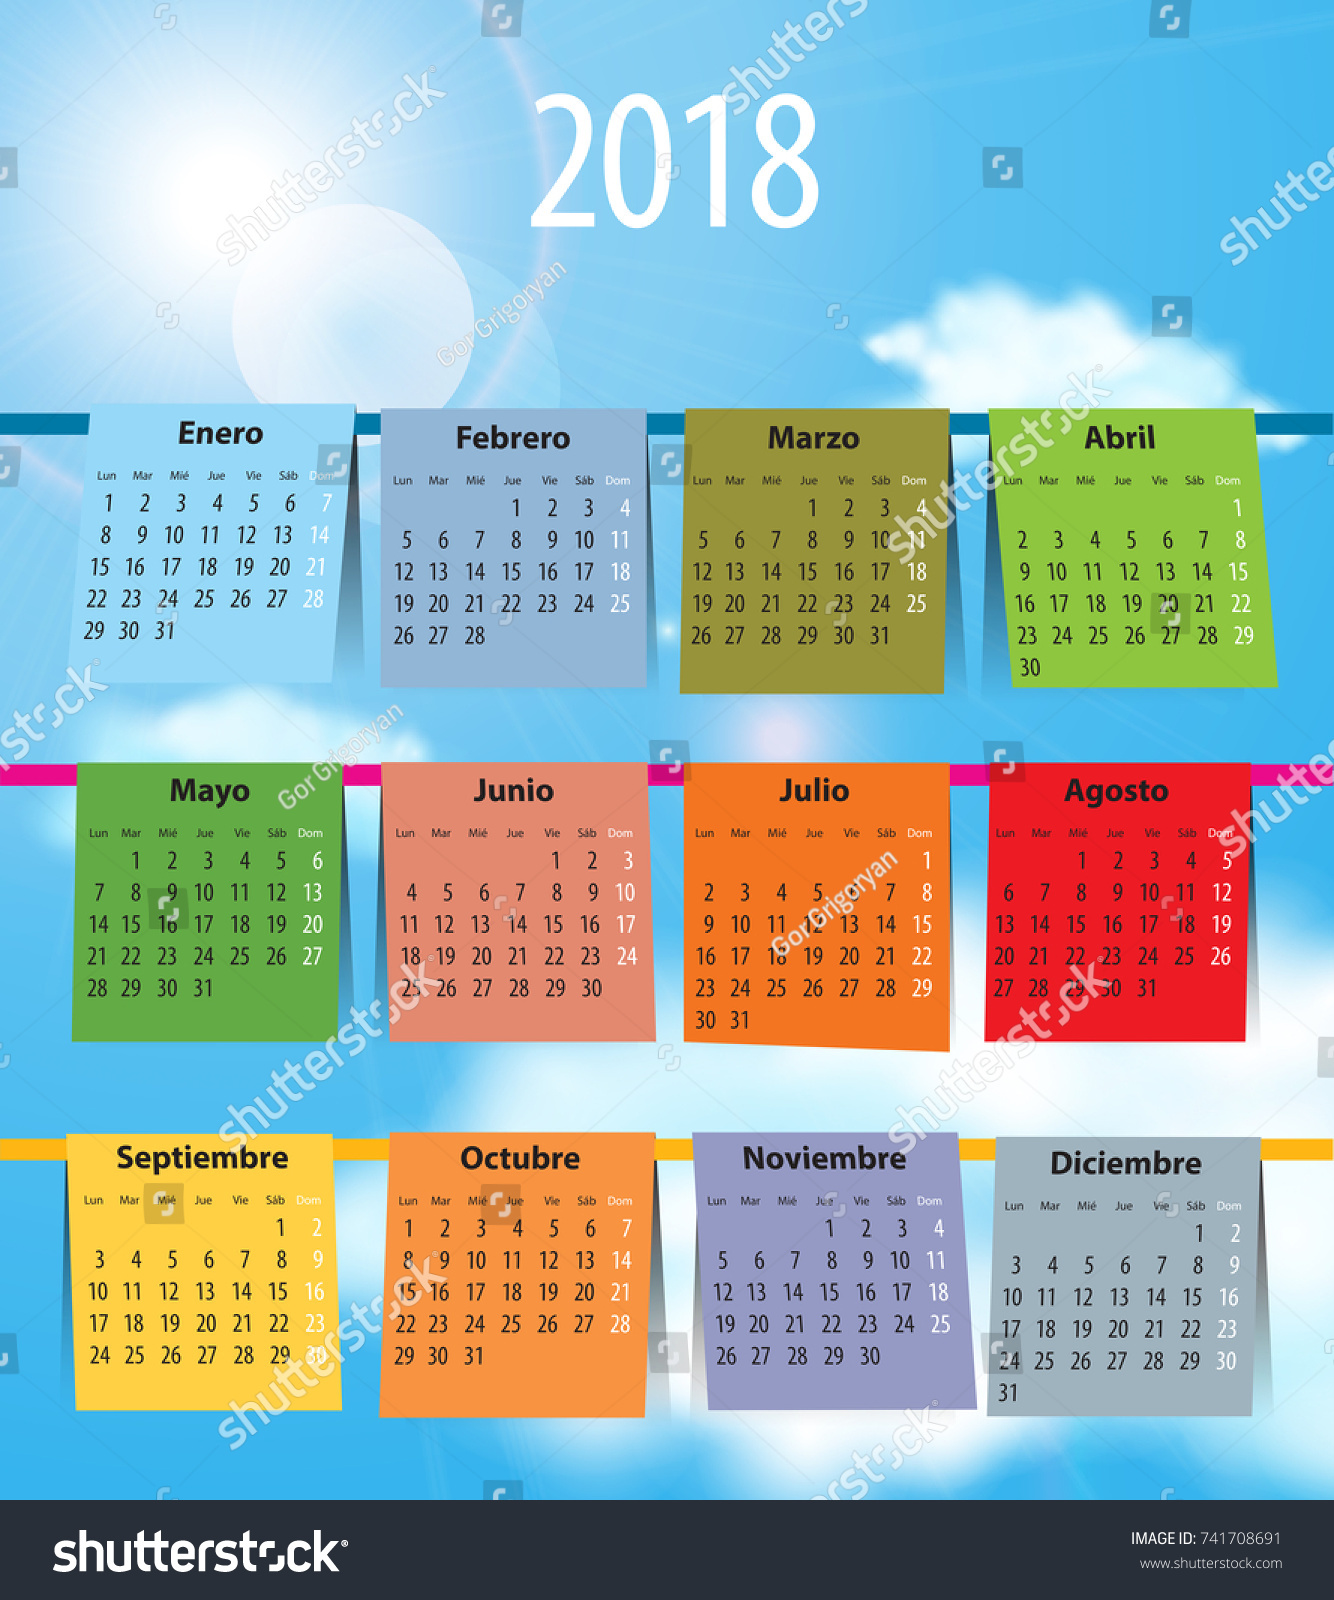 spanish calendar 2018 like laundry on stock vector 741708691 shutterstock. Black Bedroom Furniture Sets. Home Design Ideas